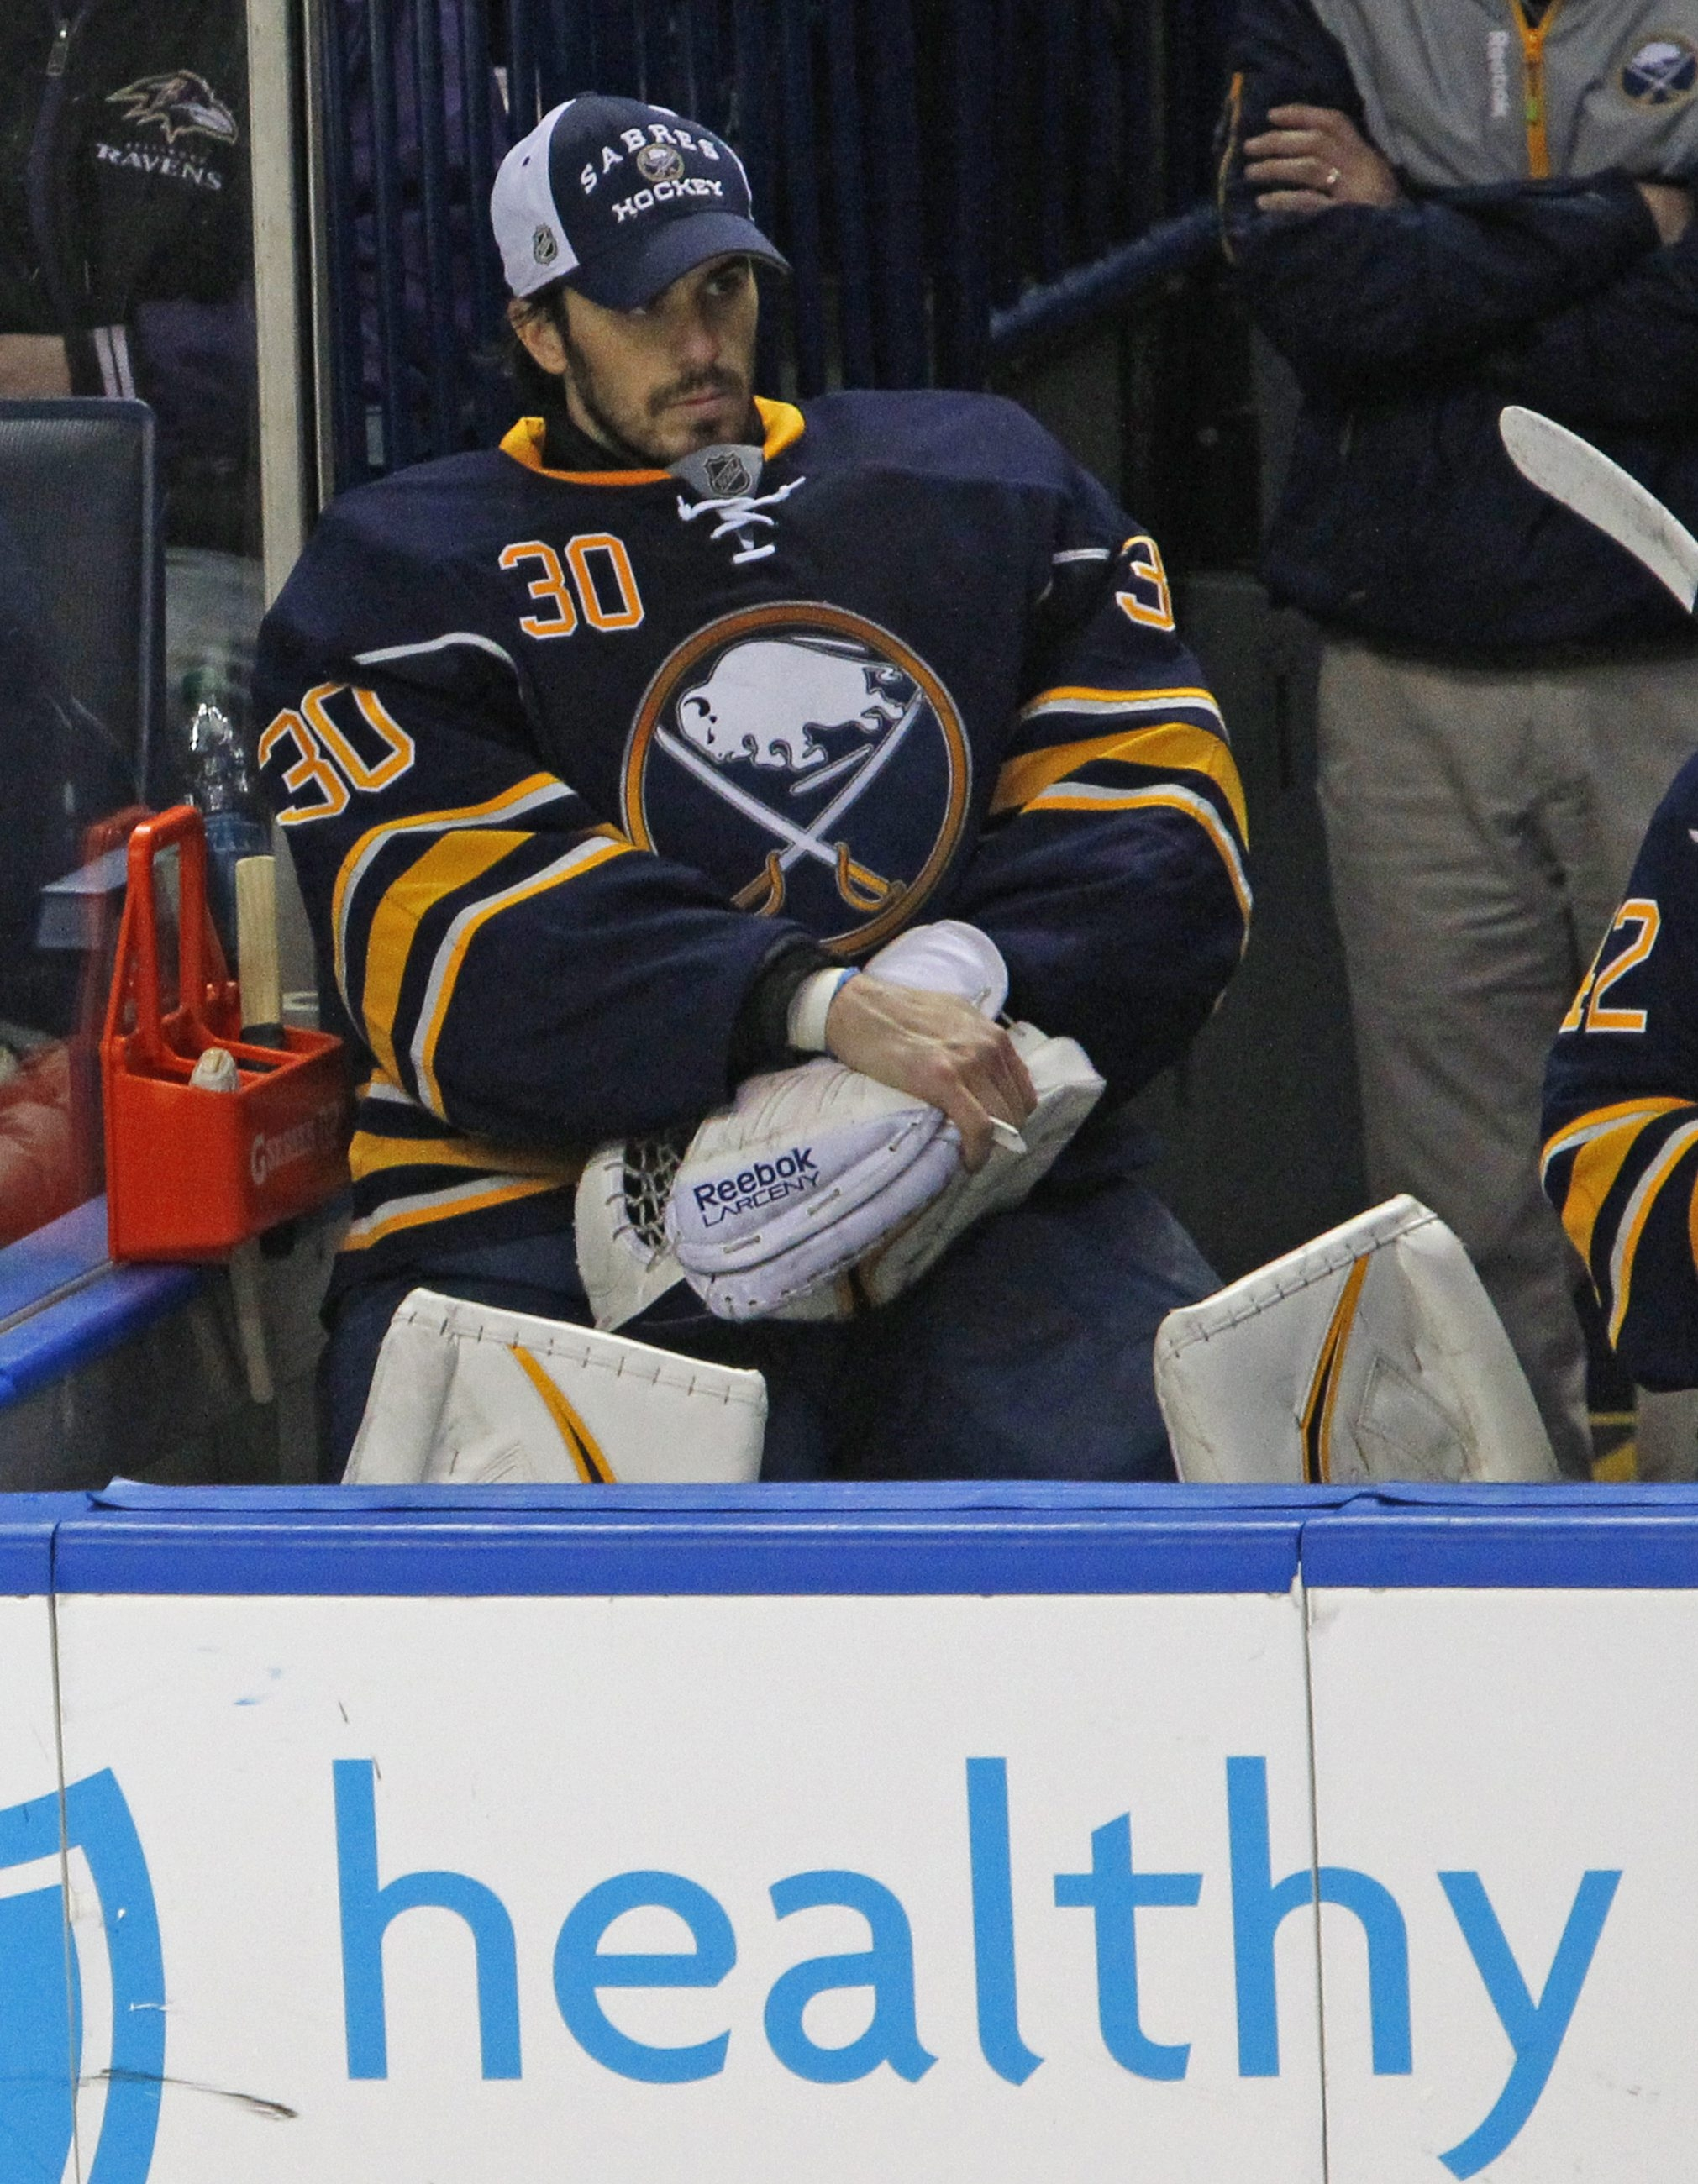 Buffalo Sabres goalie Ryan Miller watches the action from the bench after being pulled early in the second period. He yielded the first four goals during a Rangers' five-goal blitz in just under three minutes  and waved to the crowd after receiving his second Bronx cheer of the game. (Harry Scull Jr. / Buffalo News)